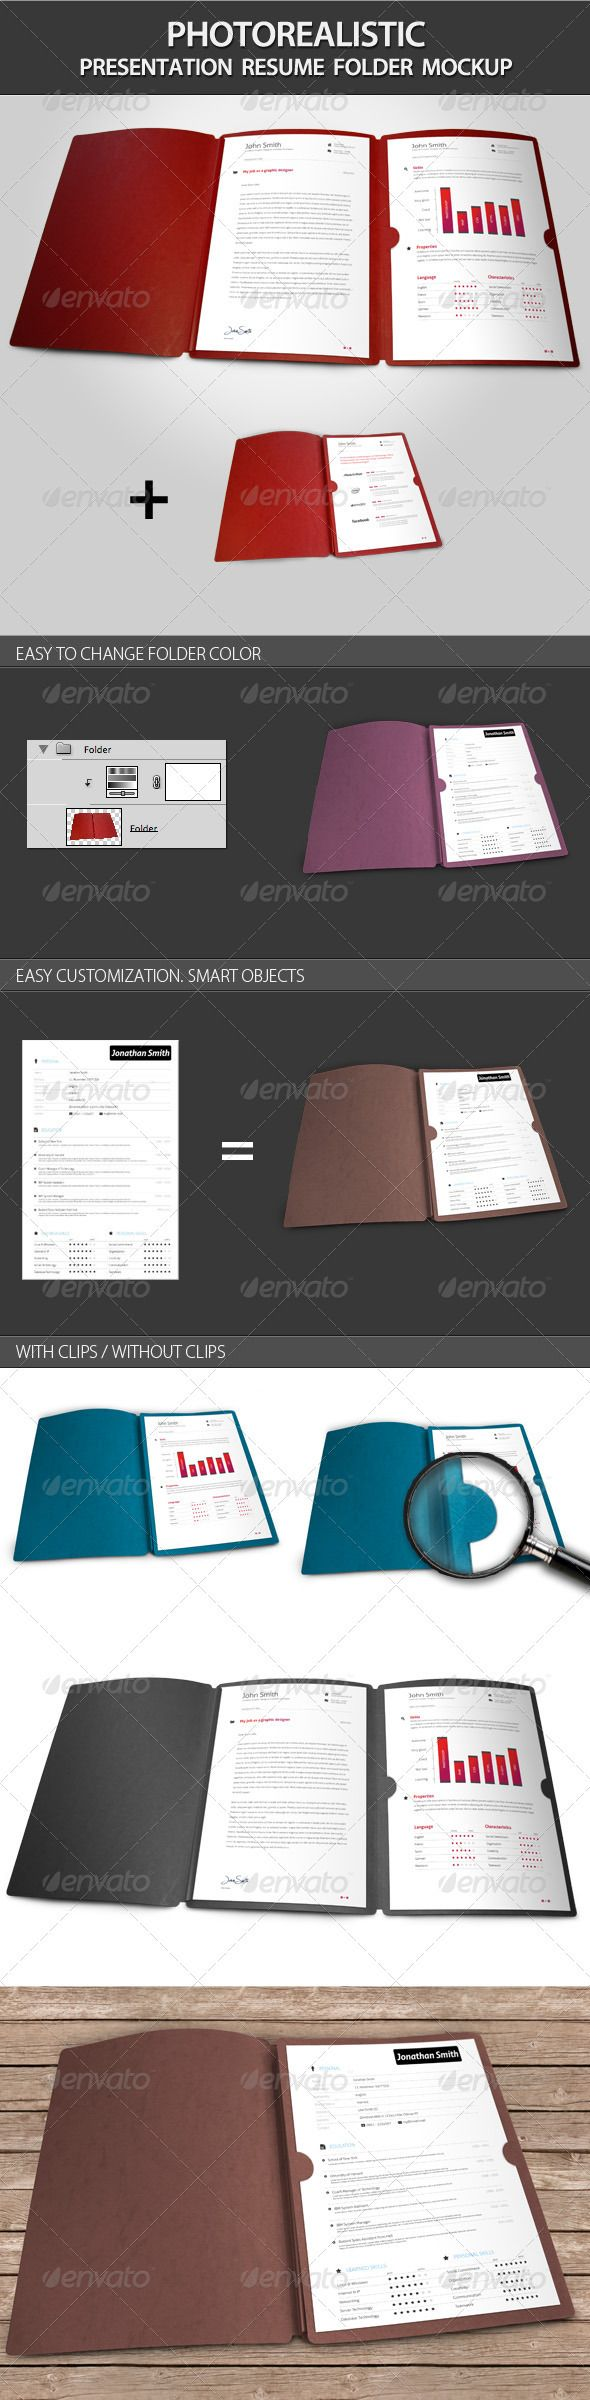 Photorealistic Presentation Resume Folder Mockup  Resume Presentation Folder